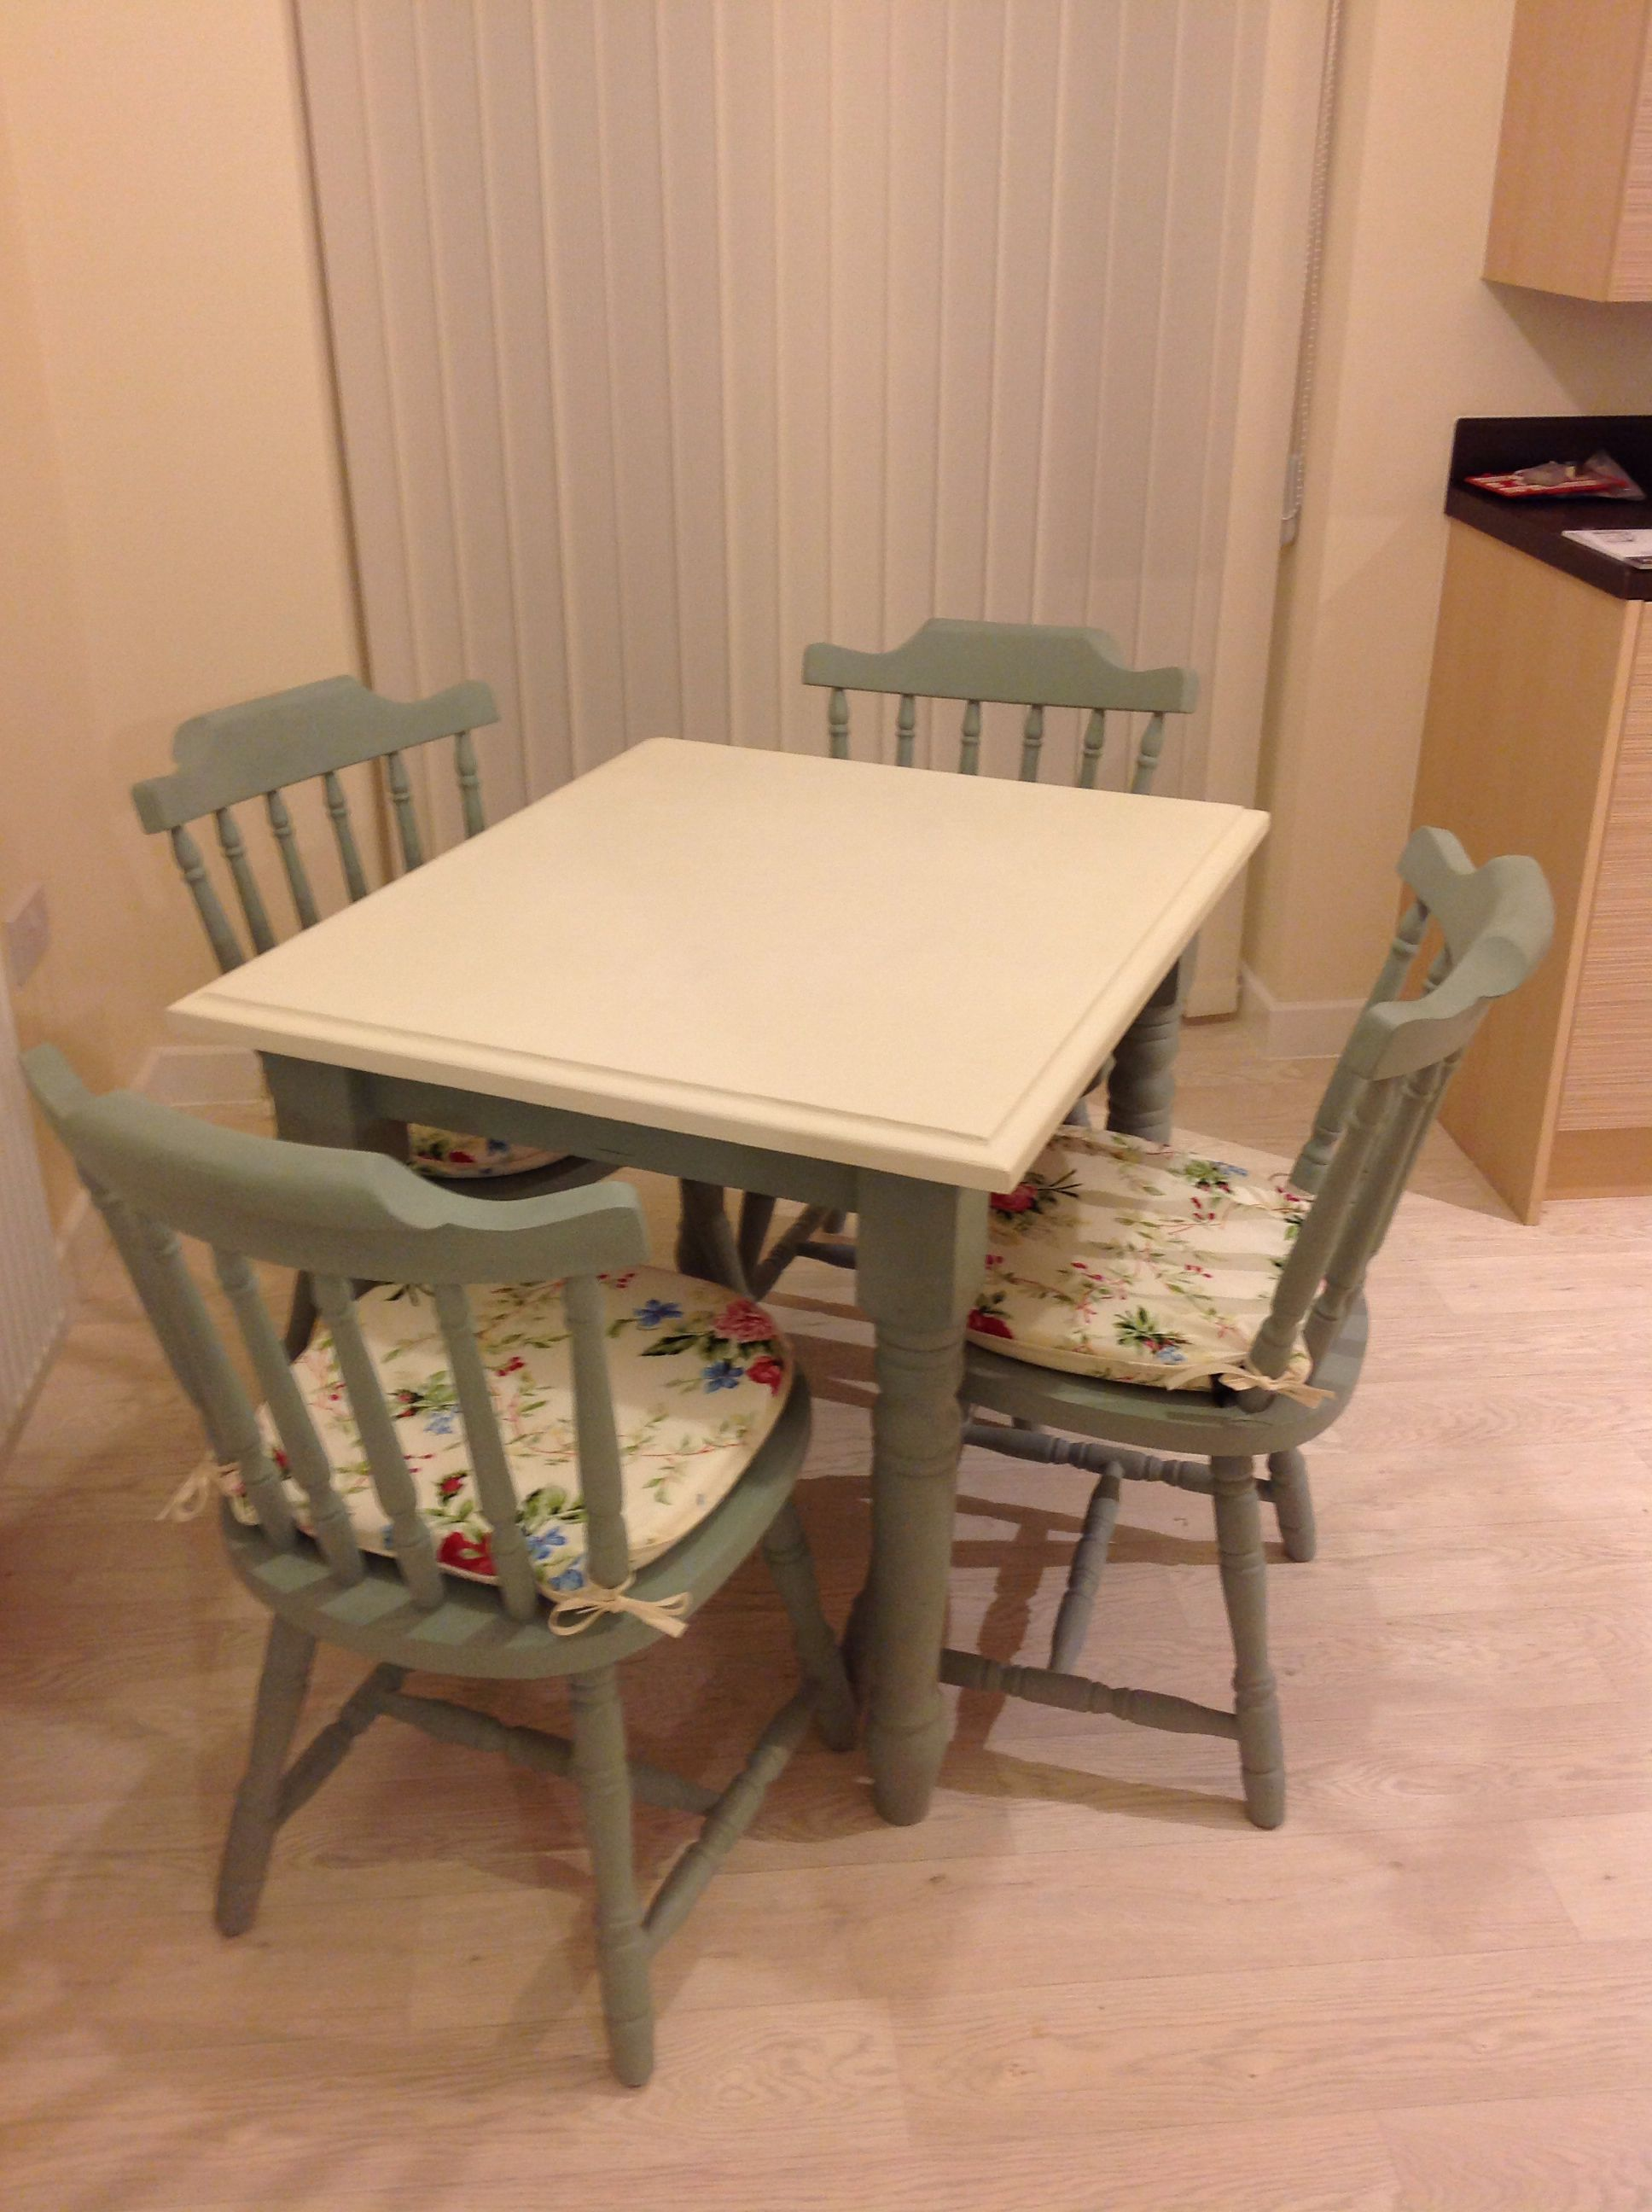 Upcycled An Old Pine Table And Chairs Into A Cream And Duck Egg